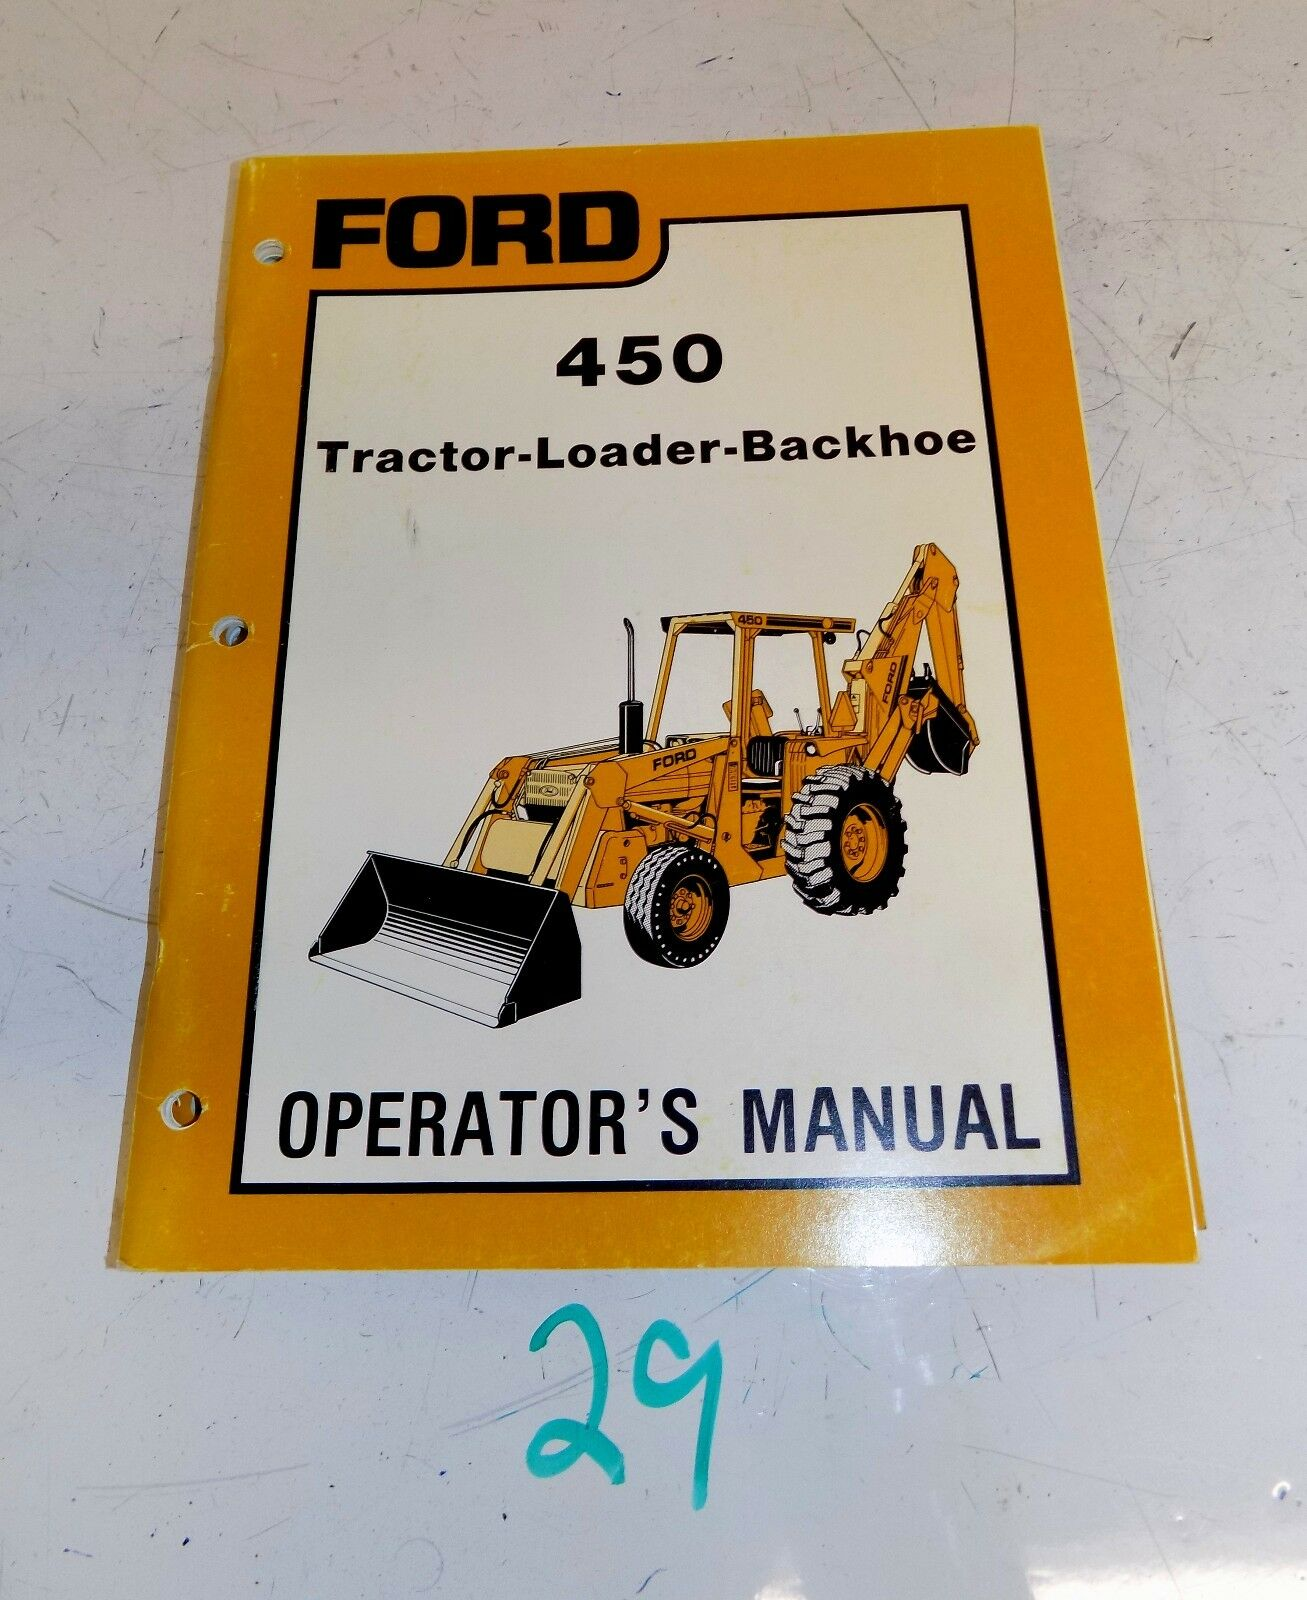 Original Ford 450 Tractor Loader Backhoe Operator's Owner's Manual Se 4566  1 of 1Only 1 available ...